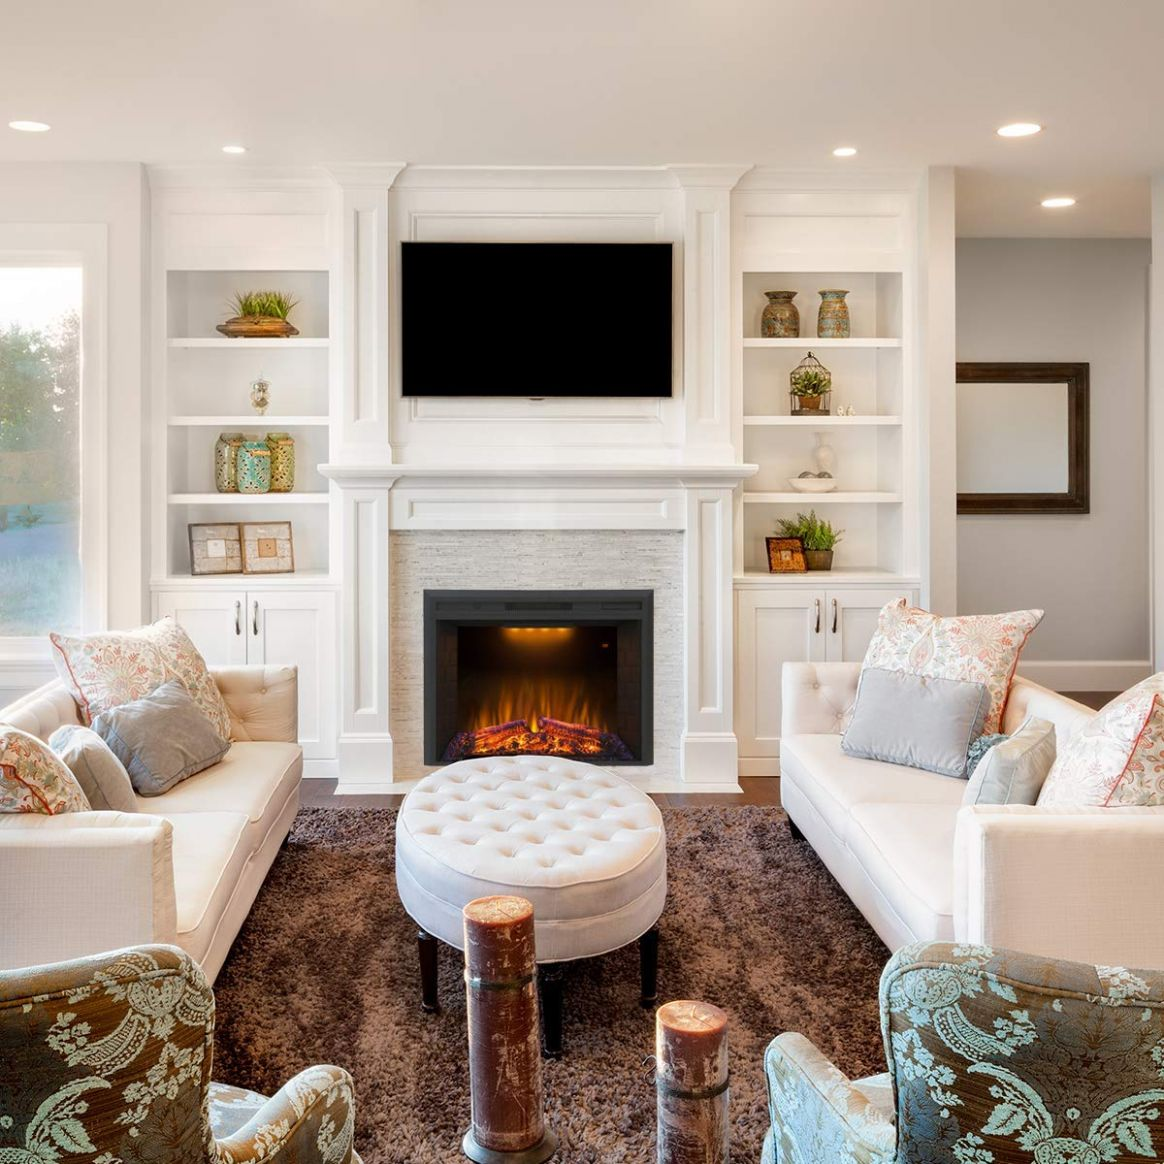 Best Electric Fireplace for the Winter Season - living room ideas electric fireplace